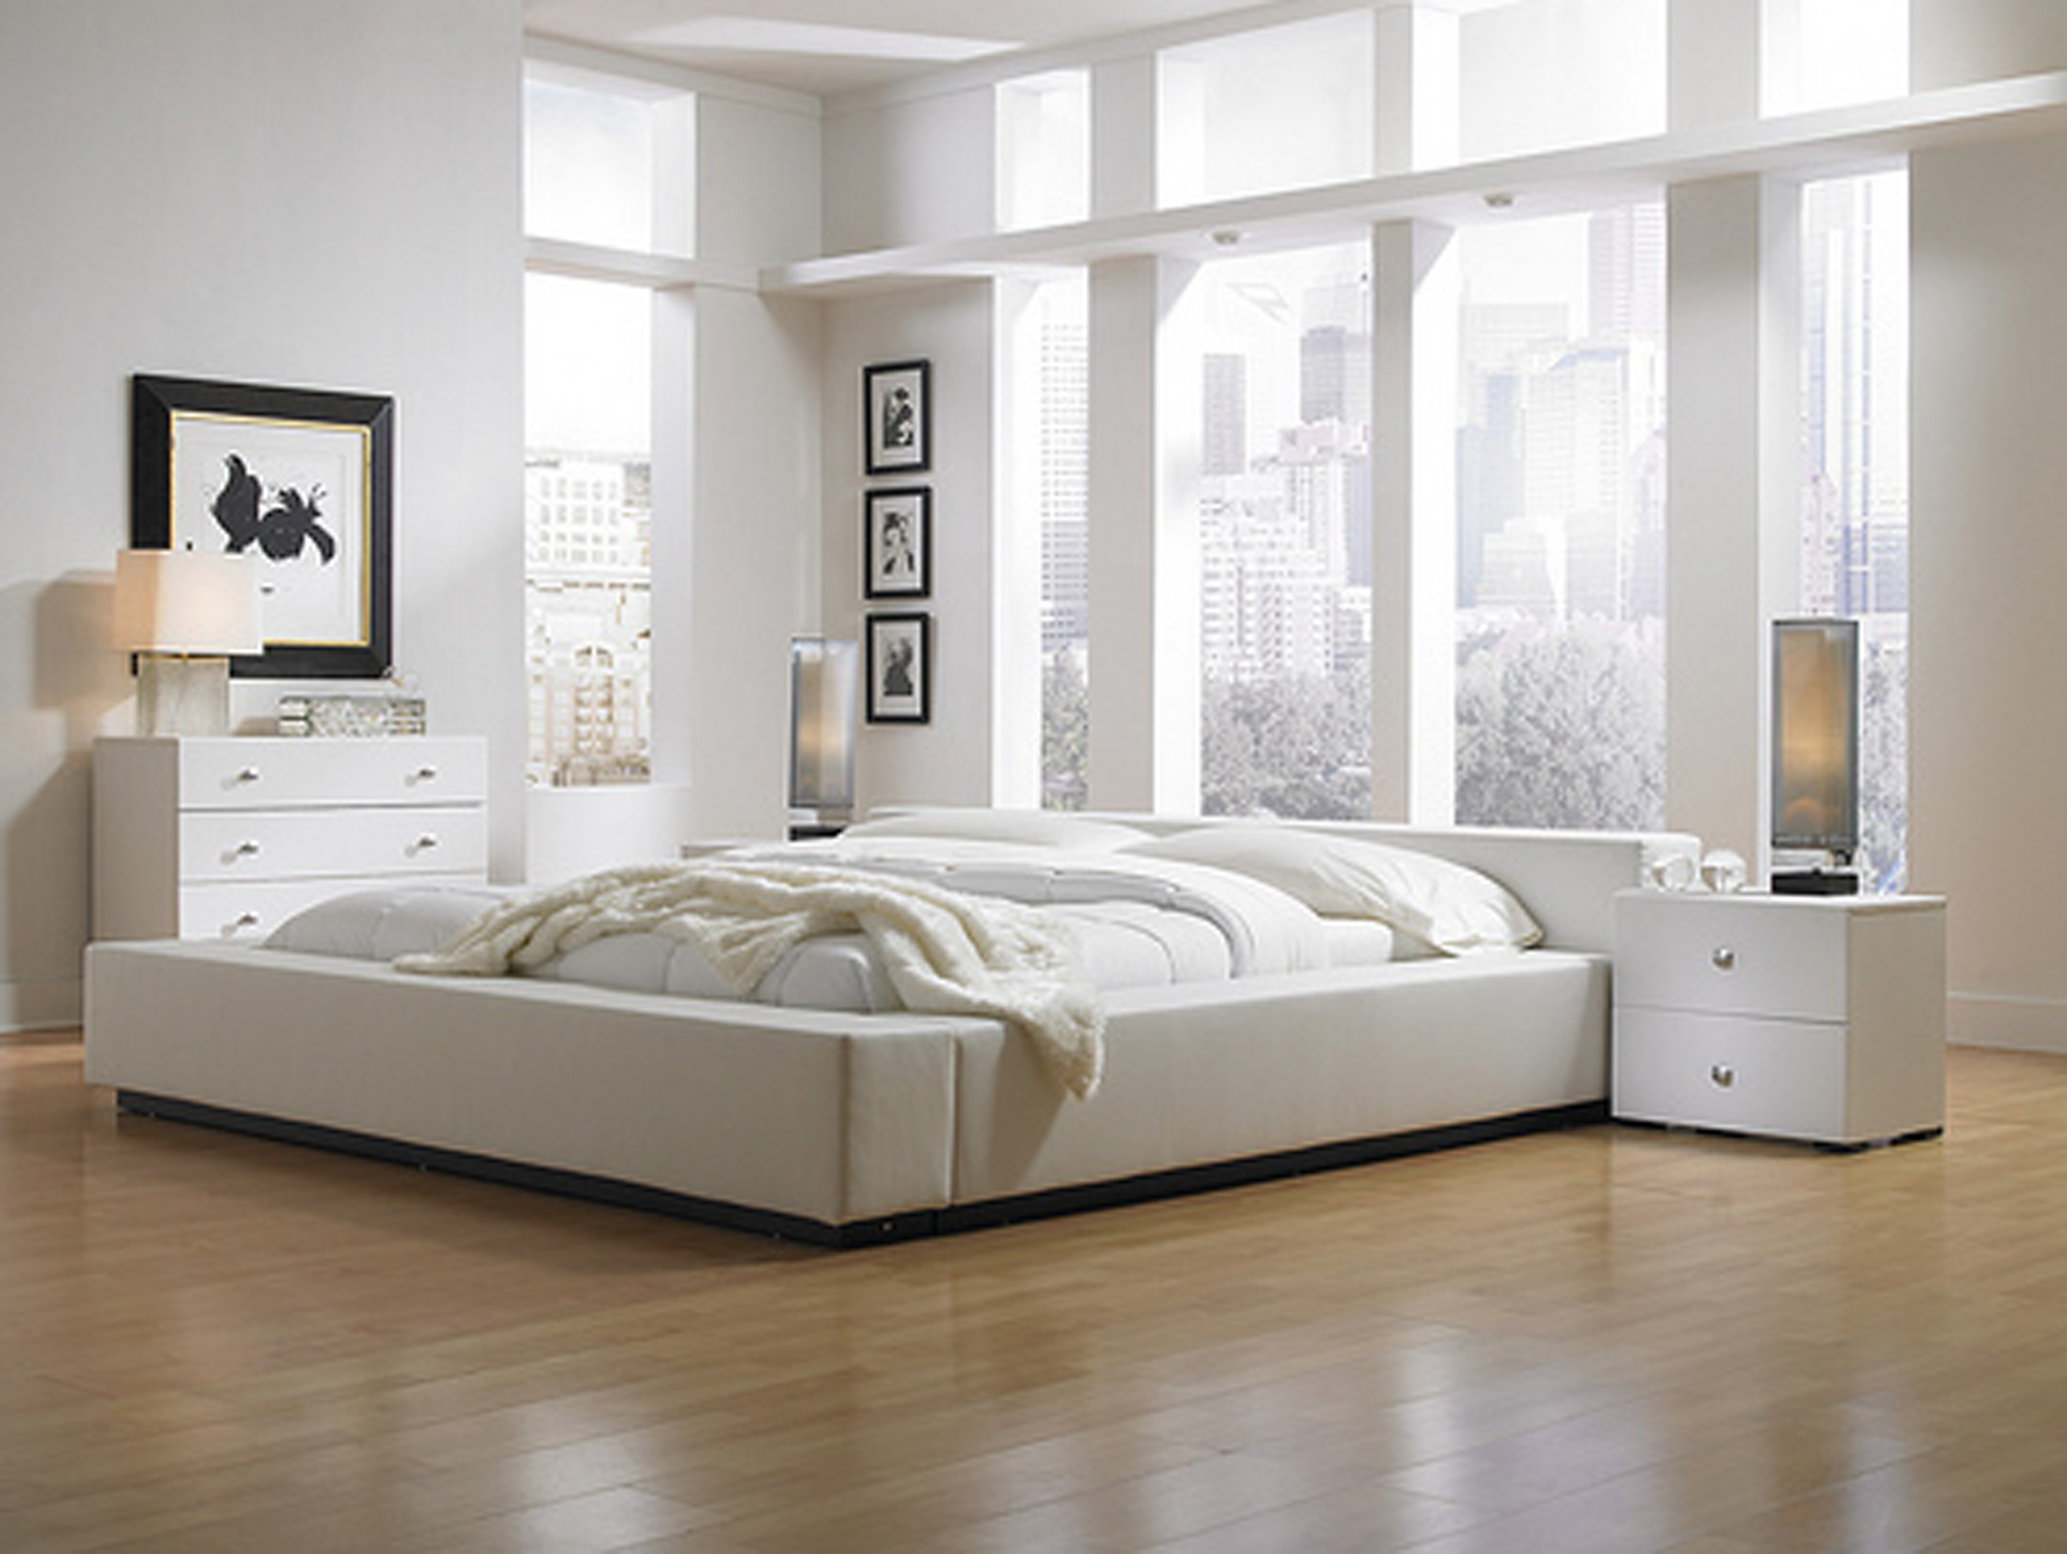 Bedroom Furniture Decor. View In Gallery Modern White Master Bedroom  Furniture Ideas For Interior Decoration